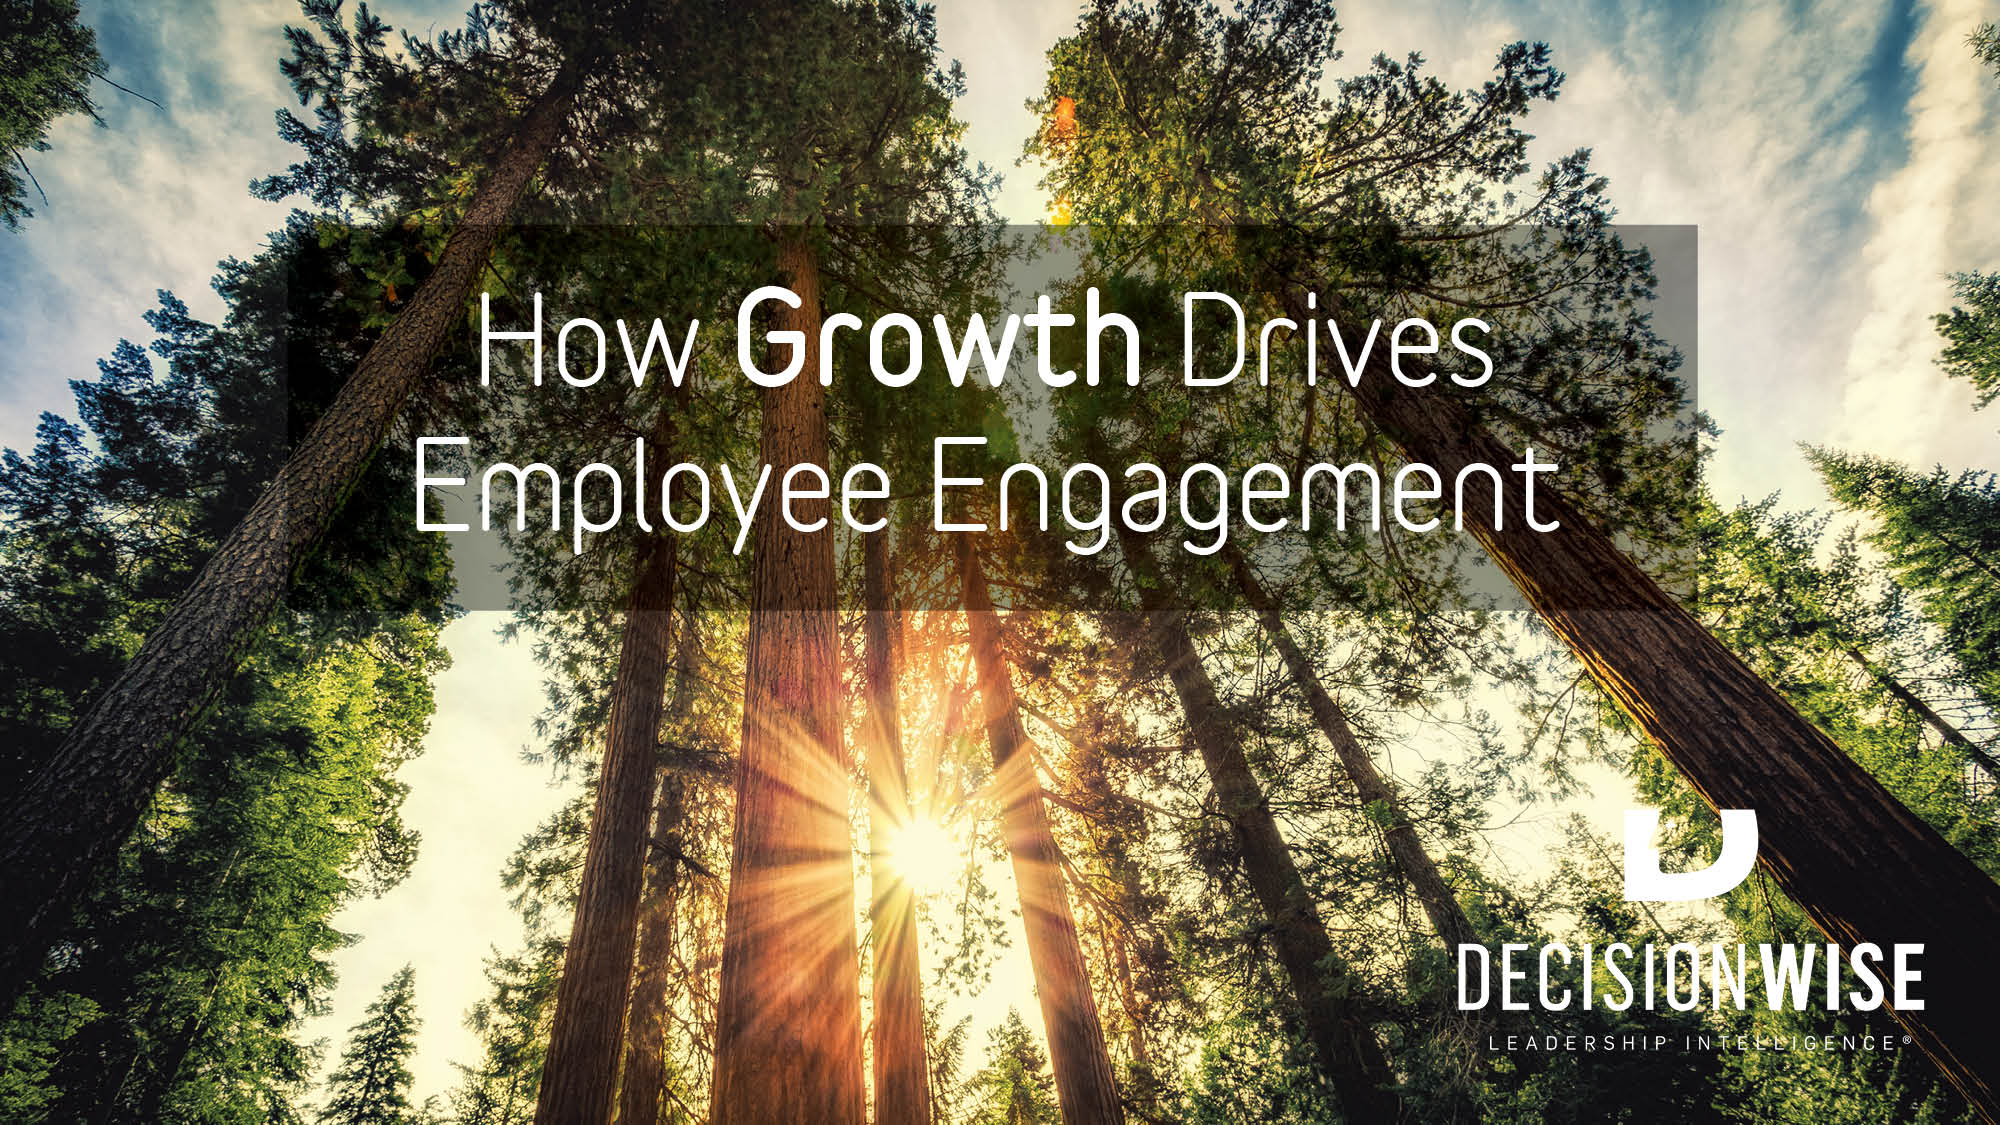 How Growth Drives Employee Engagement